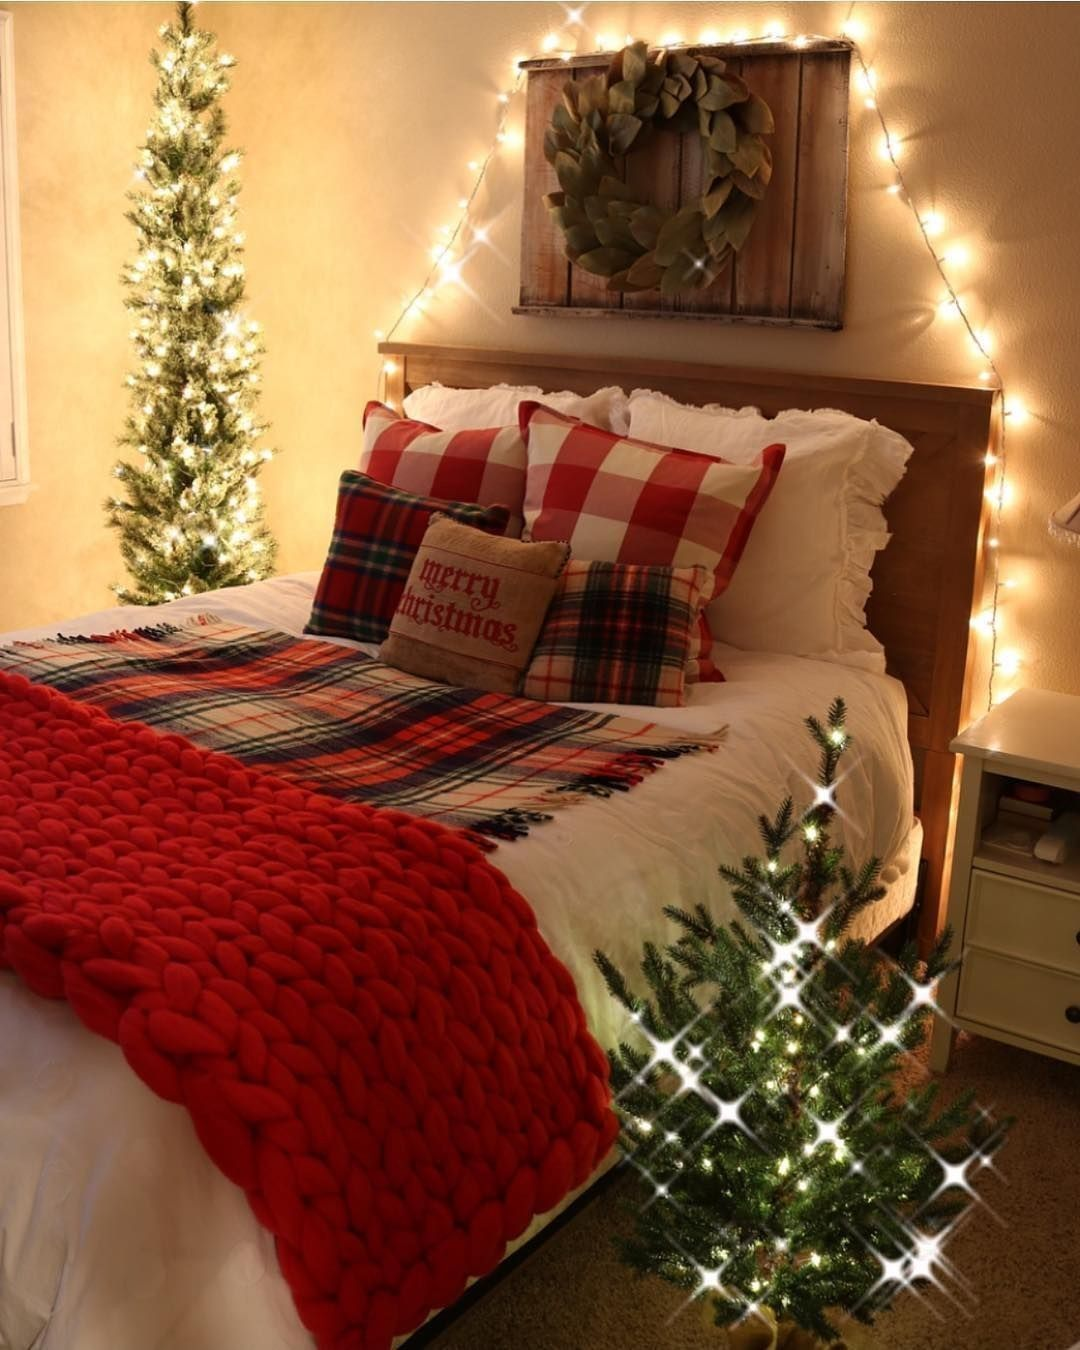 15 Easy Christmas Decorations Anyone Can Master #christmasdecor